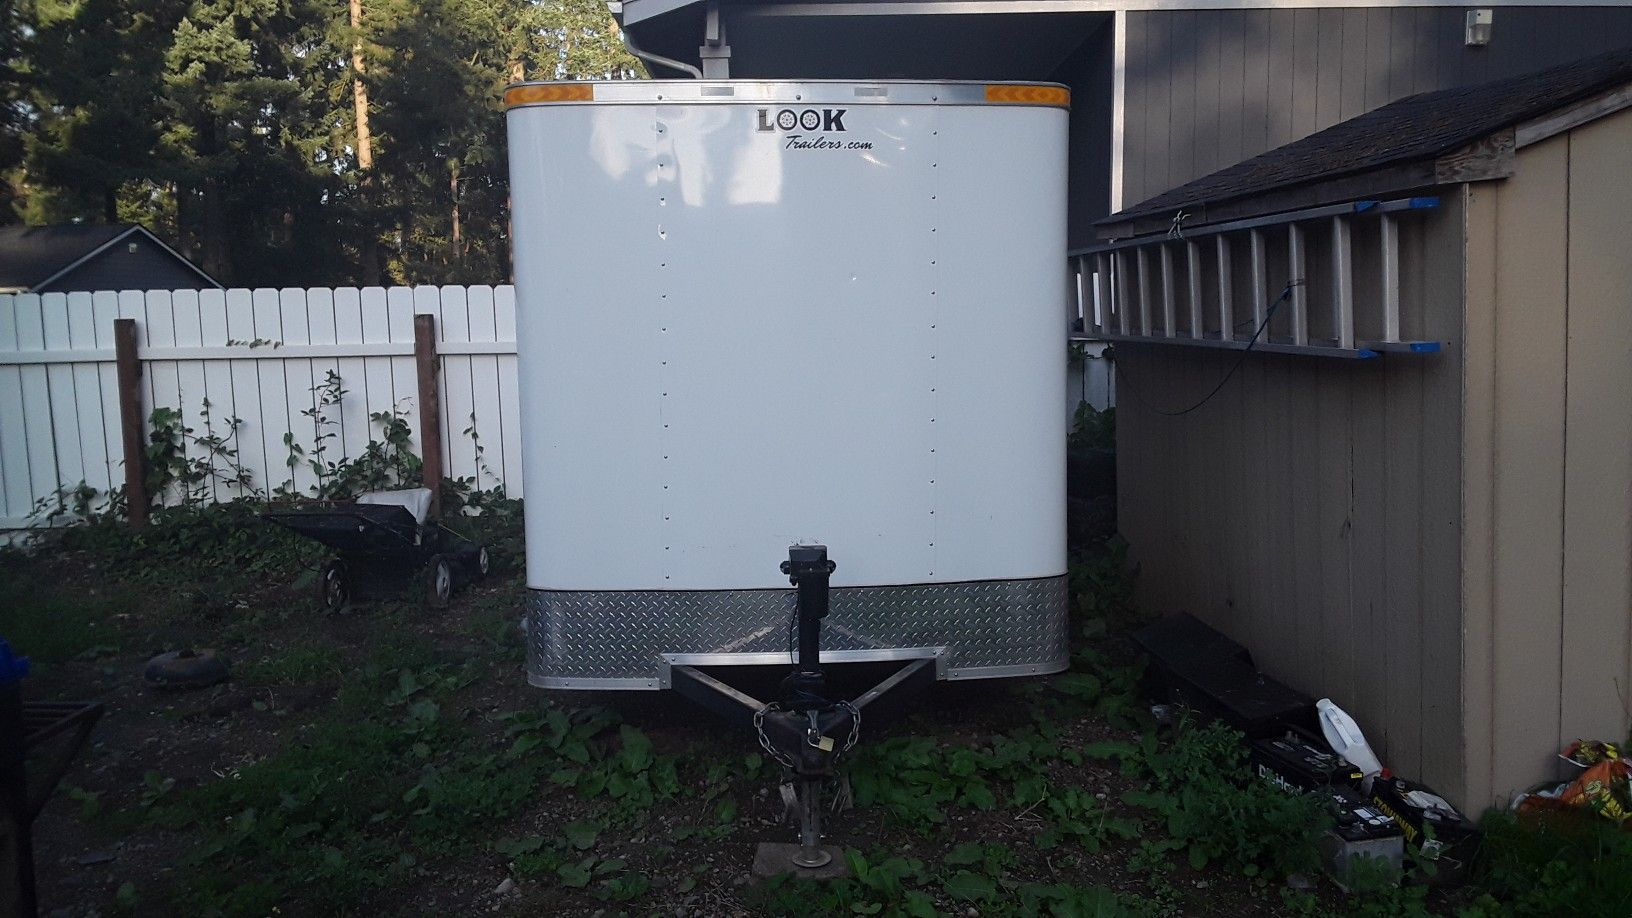 I have a in box utility trailer I would like to trade for a motorhome